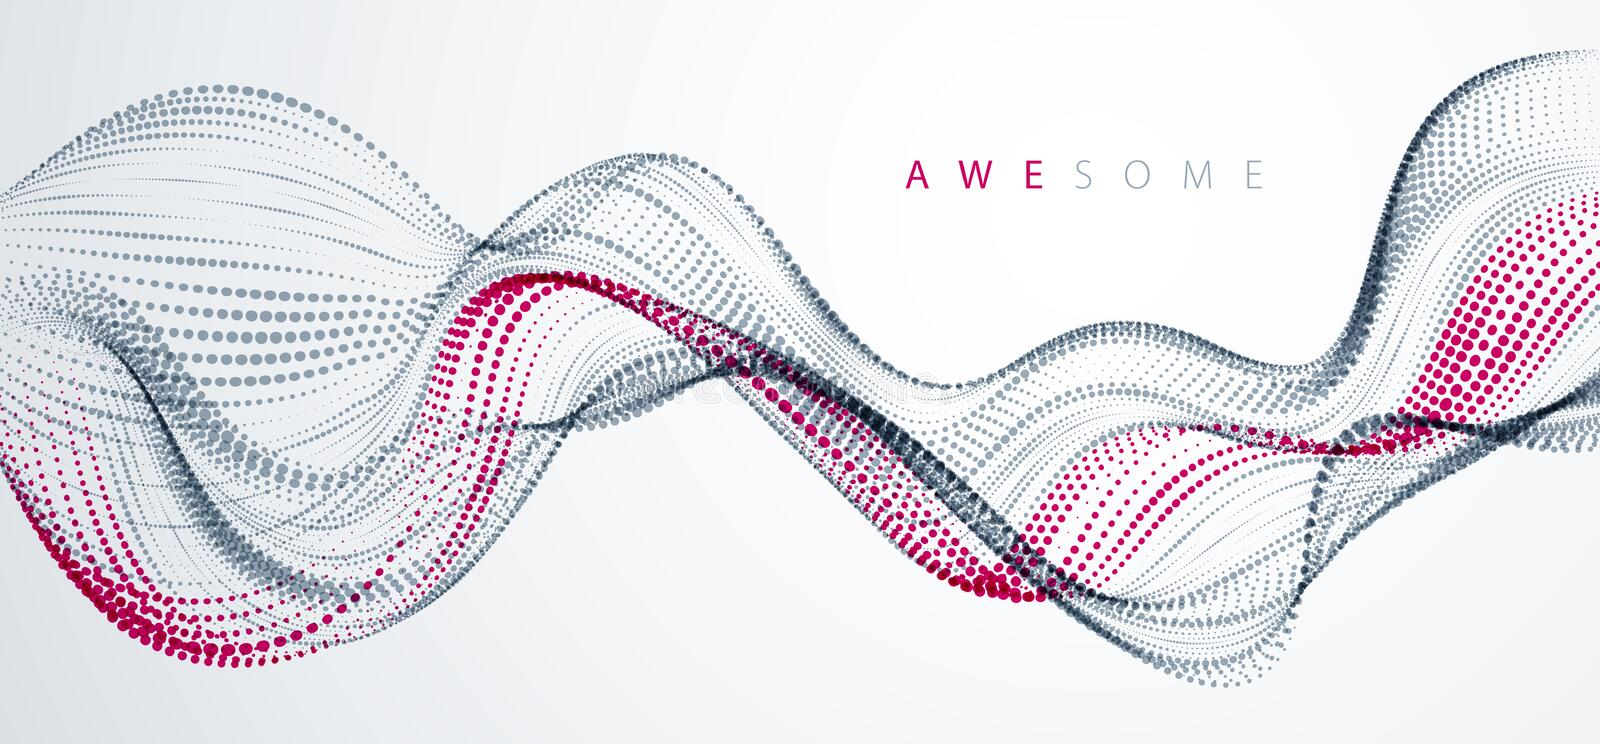 Sound wave, particles flow, effect in motion. dynamic vector abstract background. 3d shape dots blended mesh, future technology. Relaxing wallpaper vector illustration